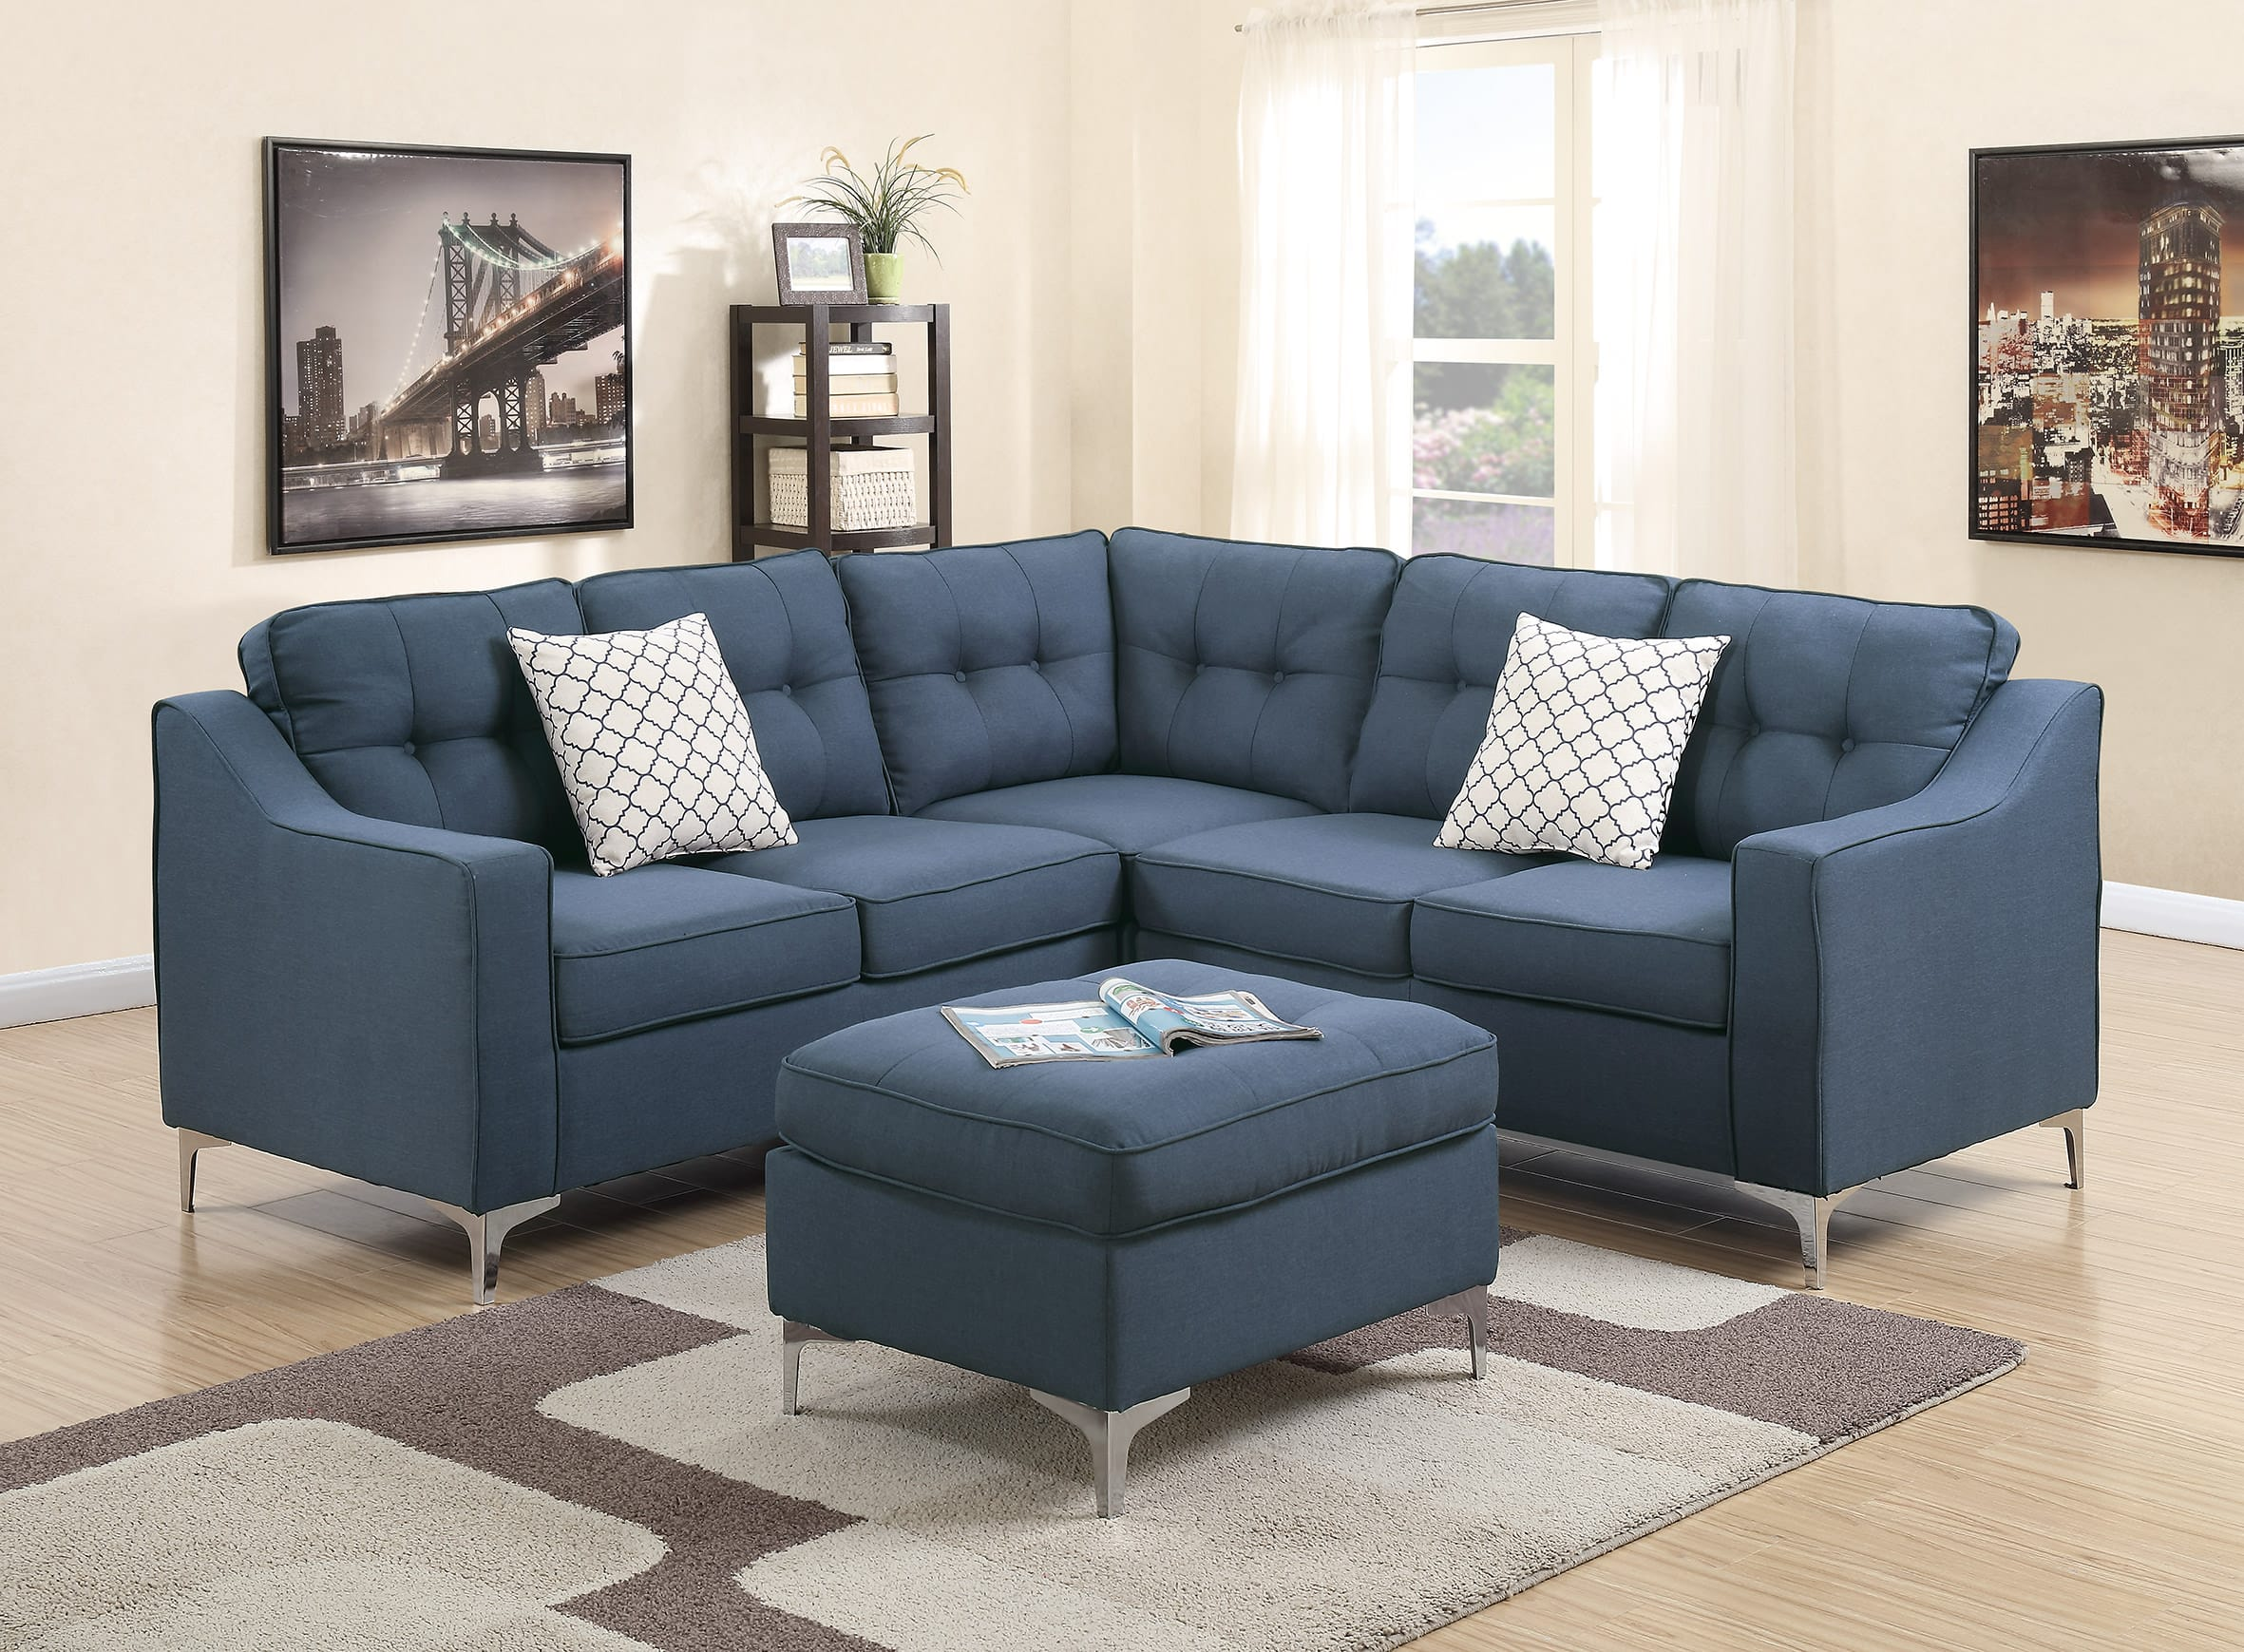 F6999 Navy 4 Pcs Sectional Sofa Set by Poundex